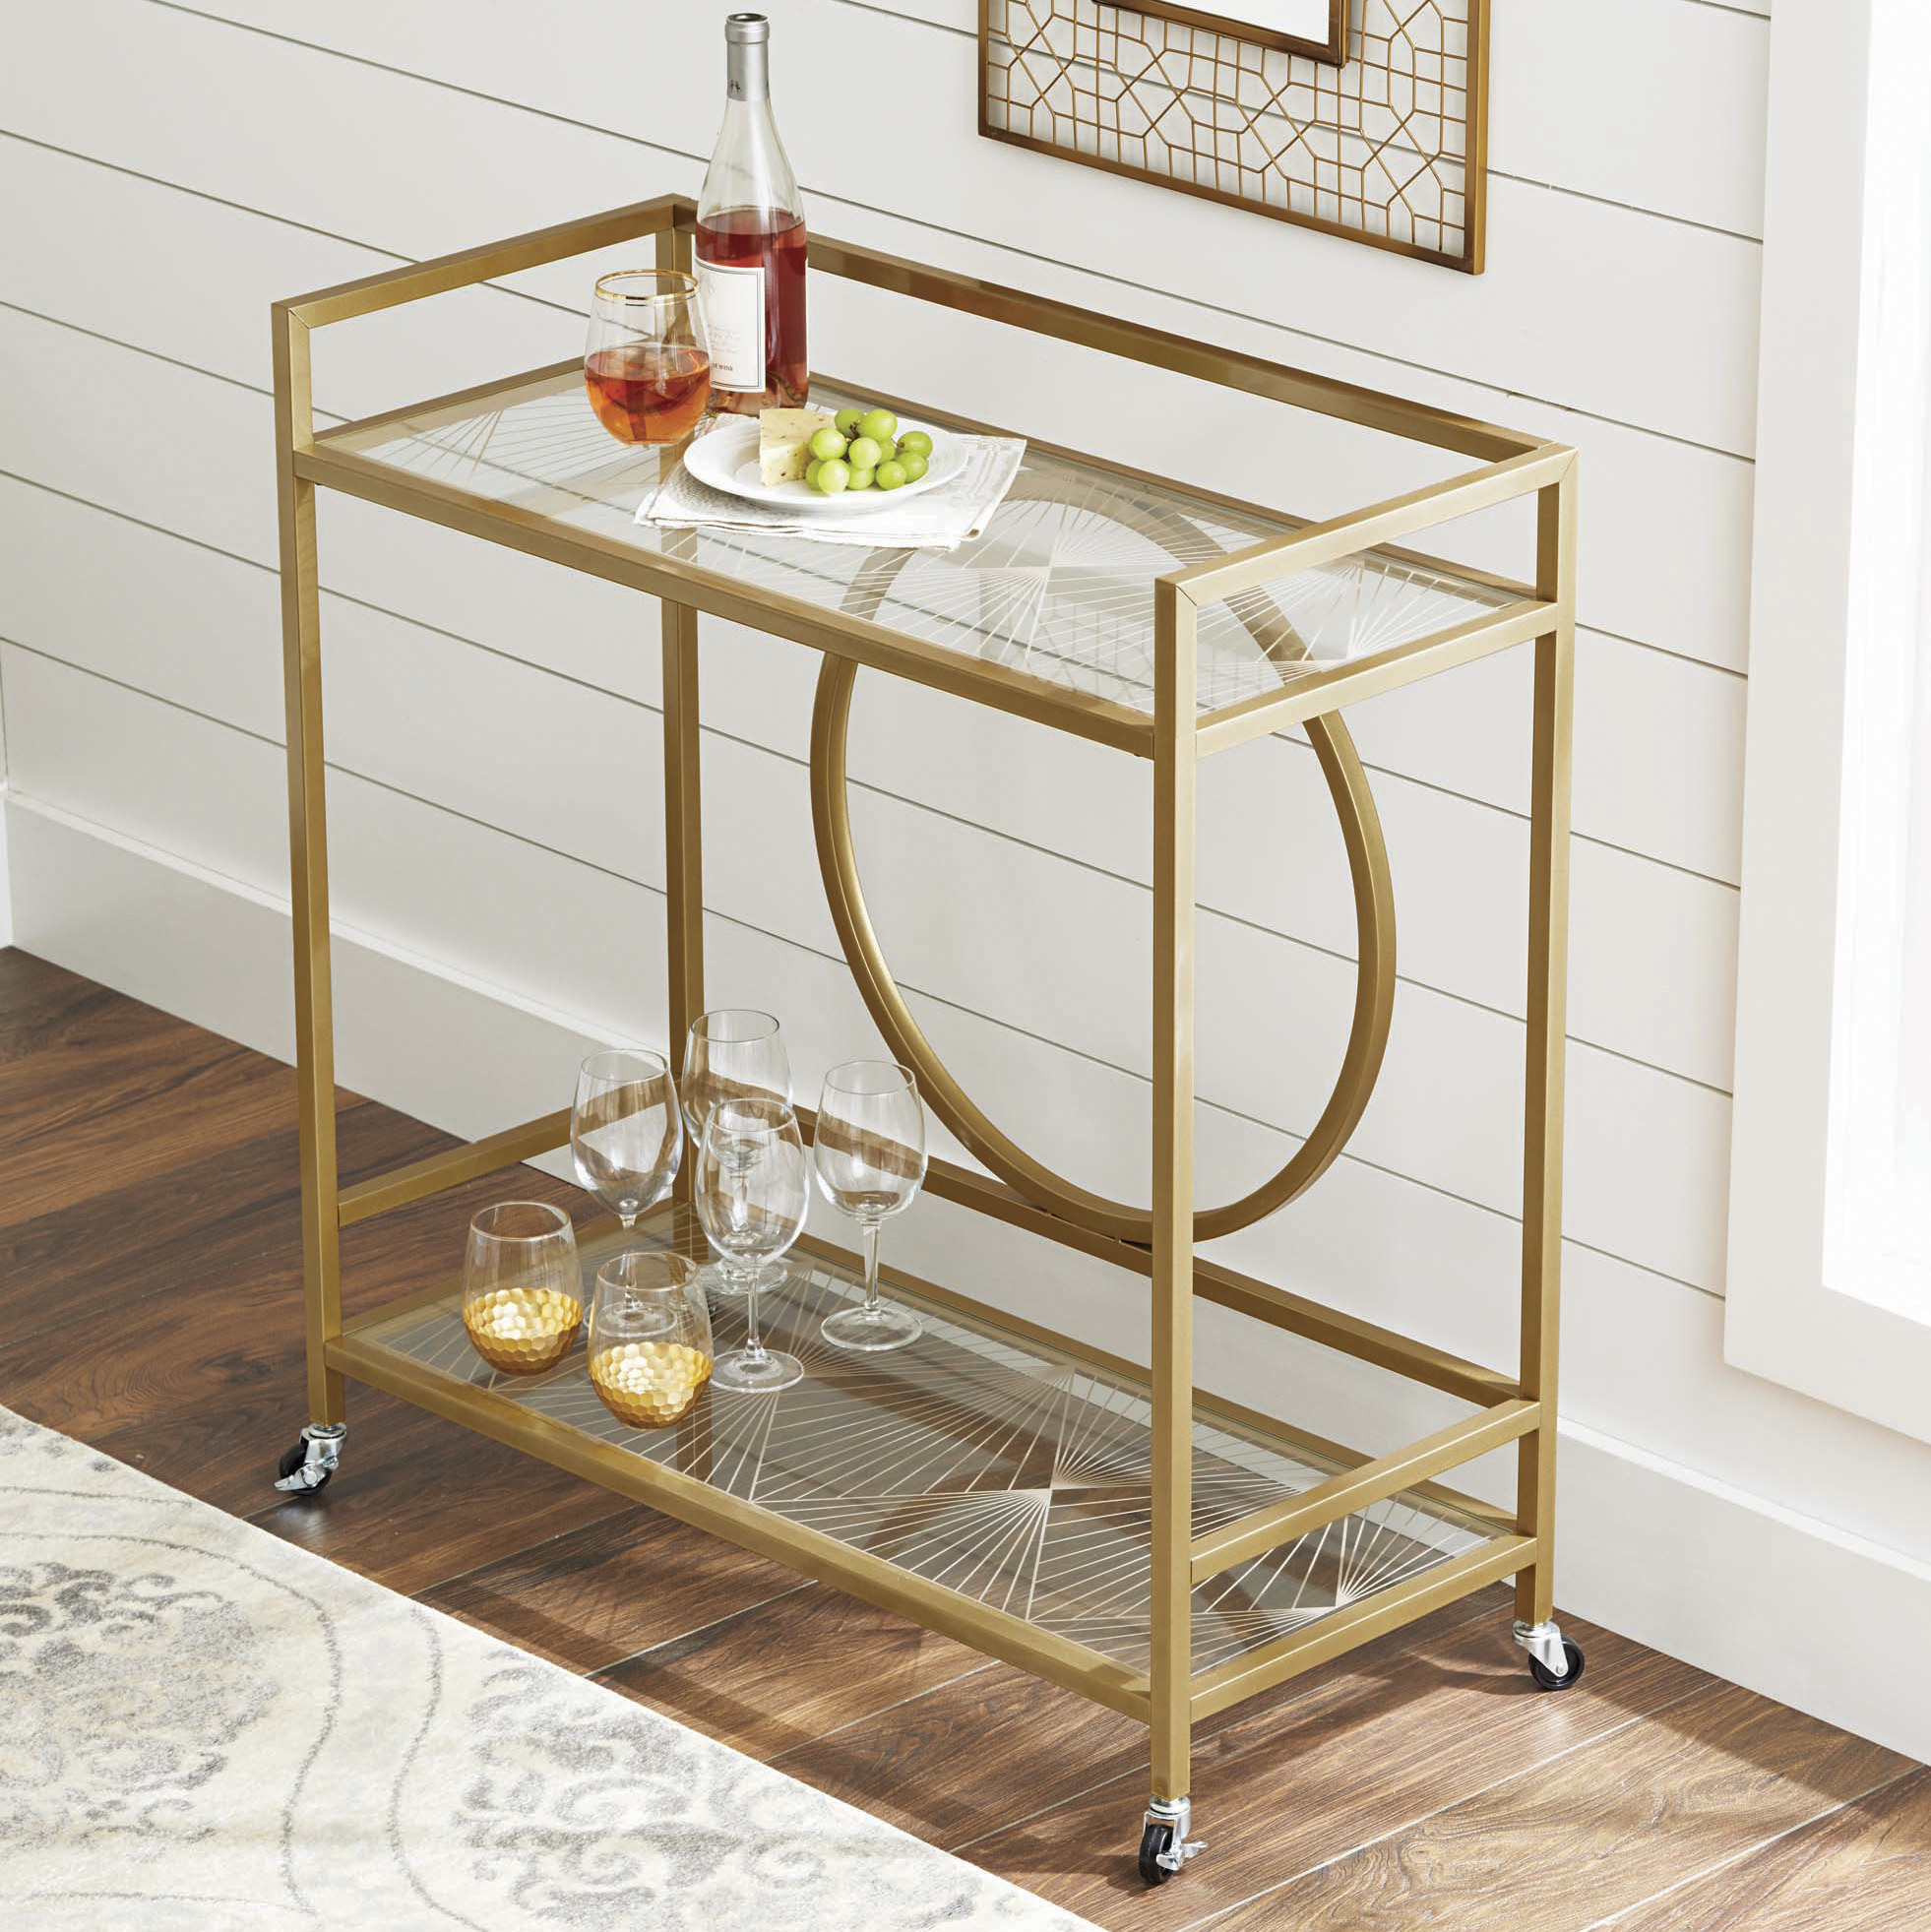 The bar cart, which has a gold finish frame, glass shelves on the top and bottom, and a circular design in the back area